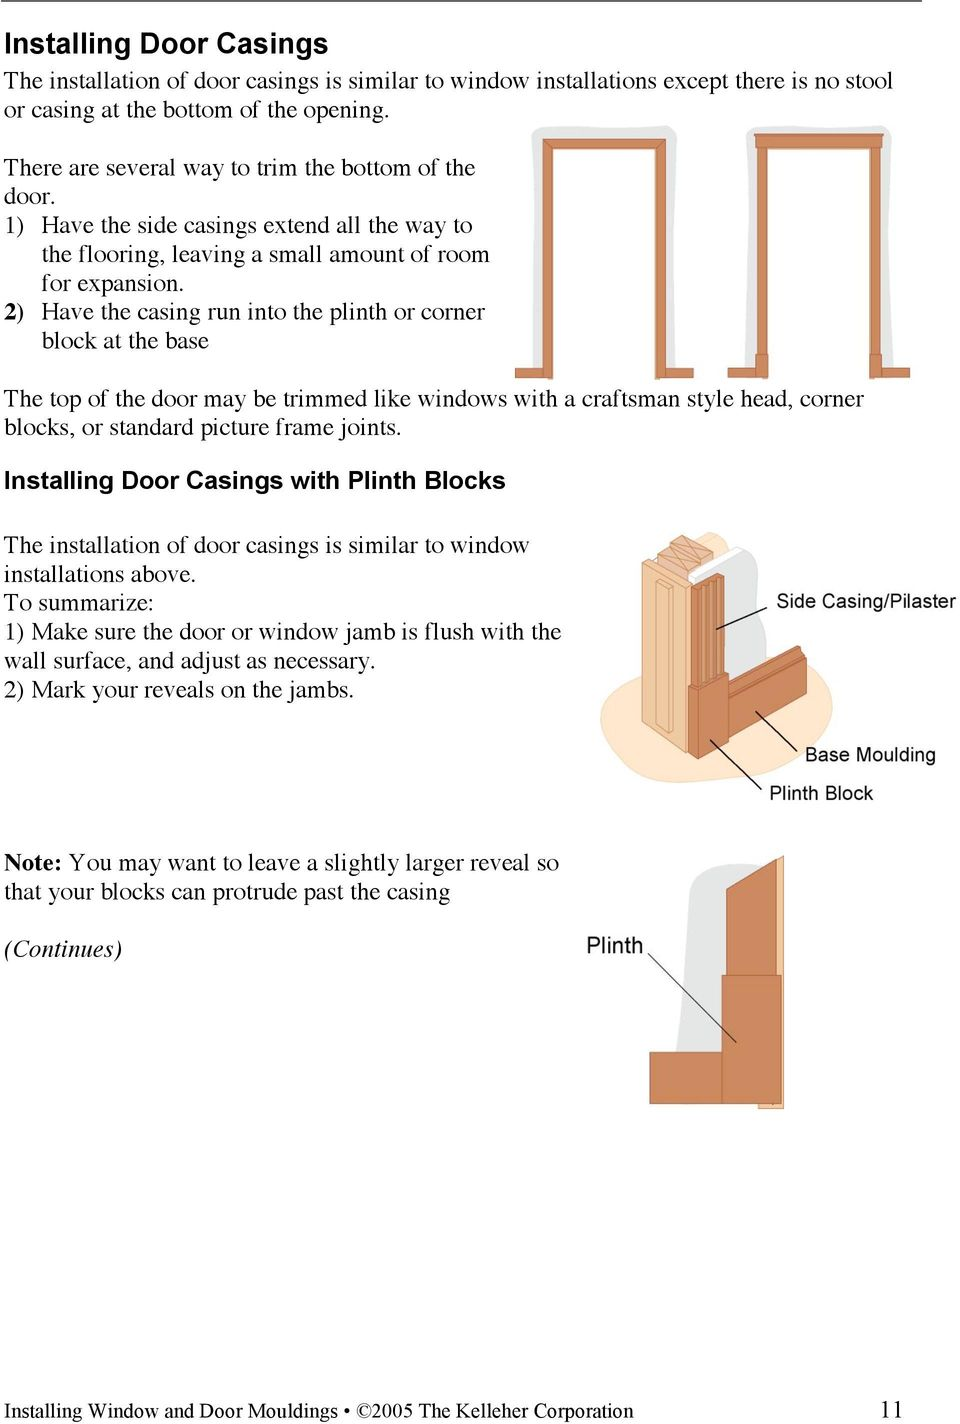 2) Have the casing run into the plinth or corner block at the base The top of the door may be trimmed like windows with a craftsman style head, corner blocks, or standard picture frame joints.